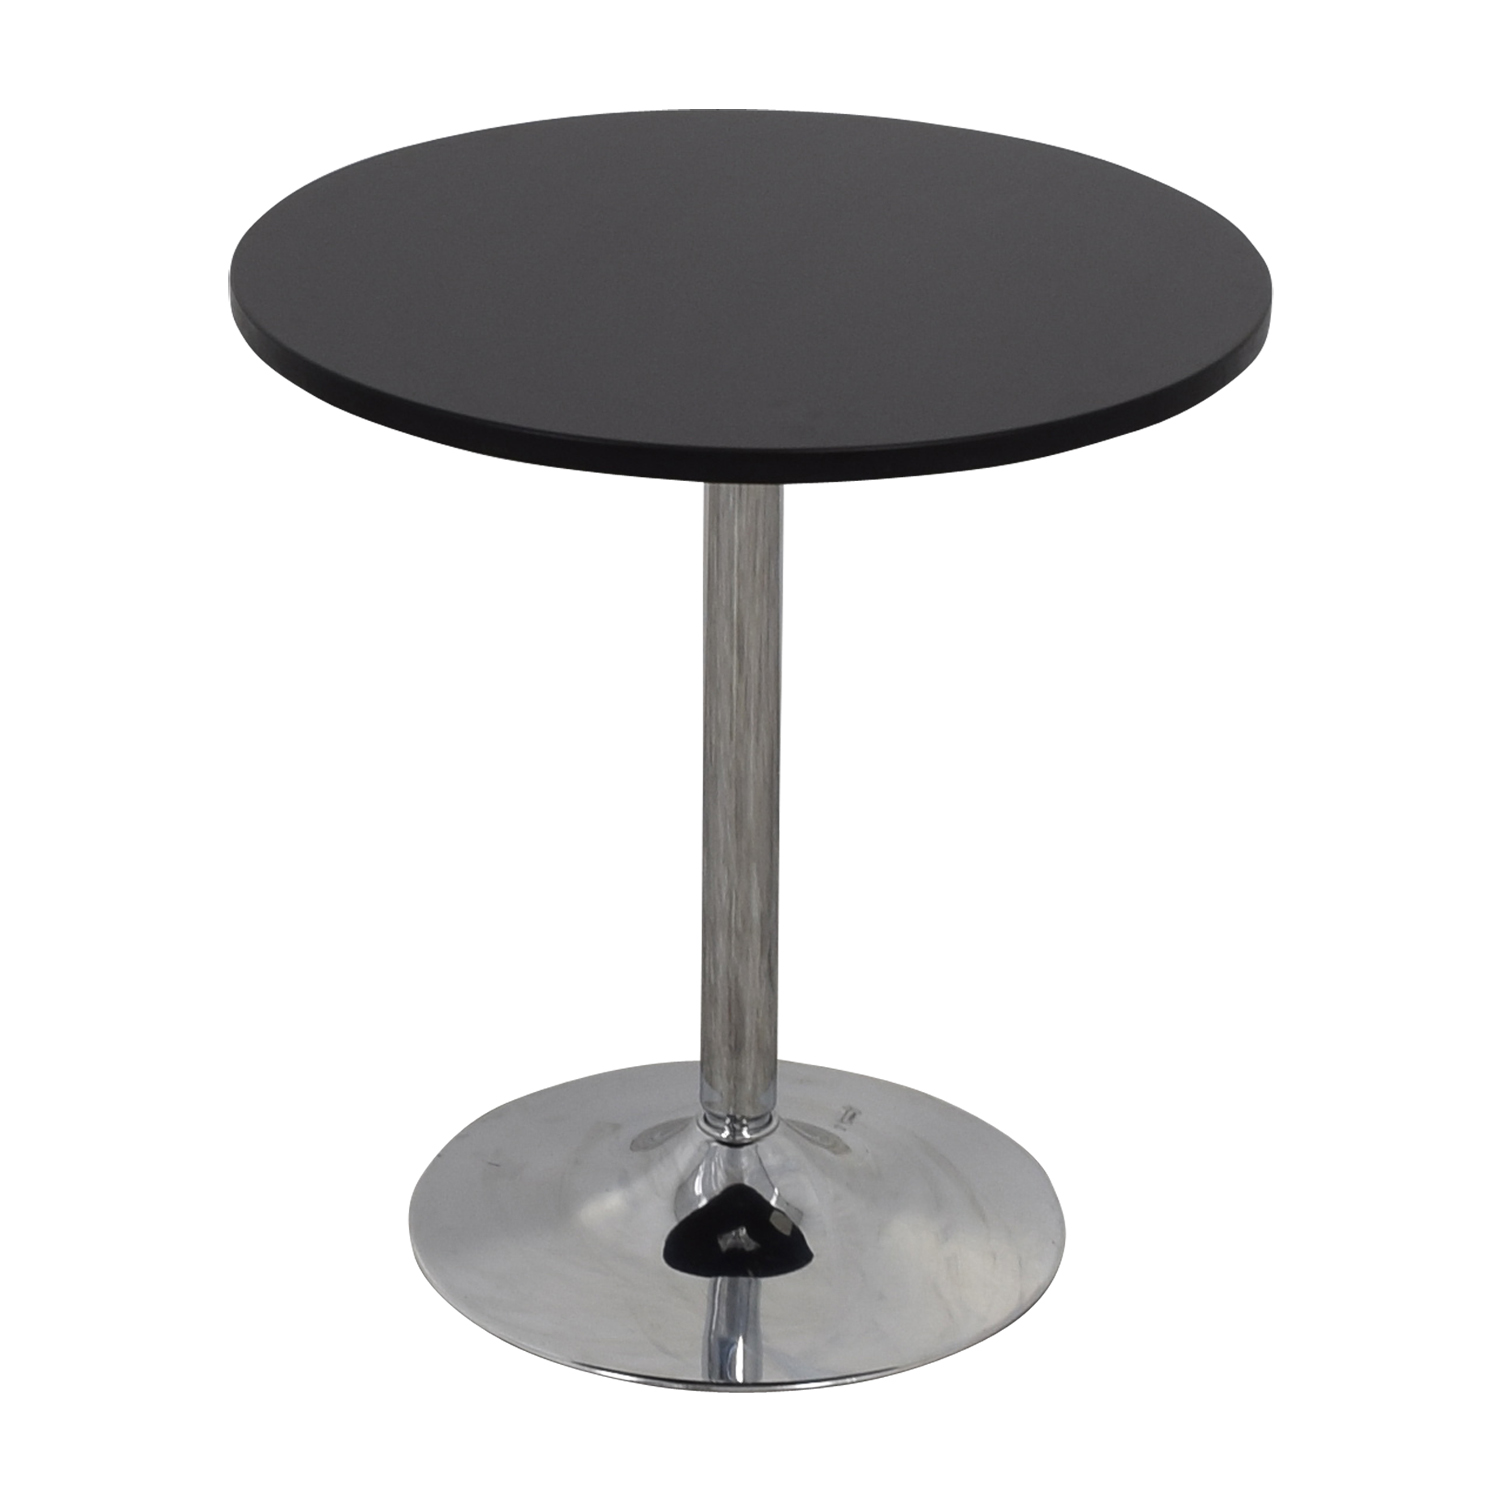 Pedestal Accent Table used